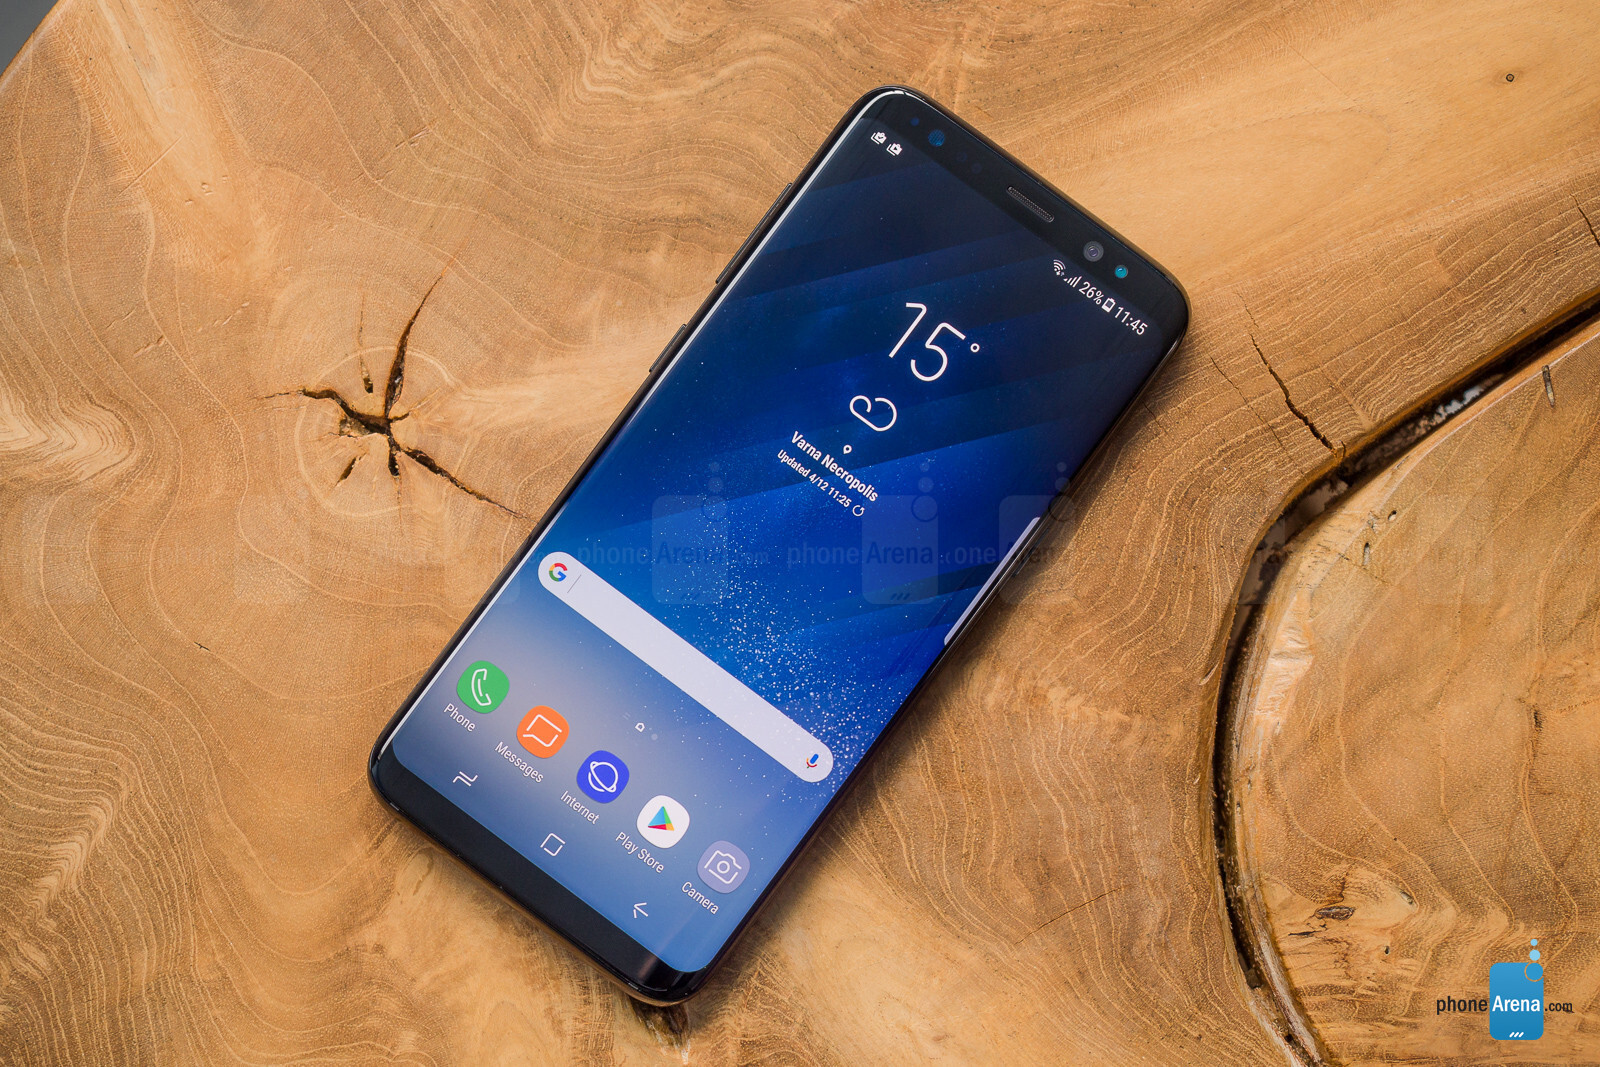 Samsung Galaxy S8 Review id4337 as well China Mobile Plans 5 City 5g Rollout As Government Demands Lower Data Prices additionally Samsung Galaxy A5 2017 Skins additionally Xiaomi Redmi Note 5 New Render Appears likewise Rainmeter Skins For Windows 10. on galaxy s screen